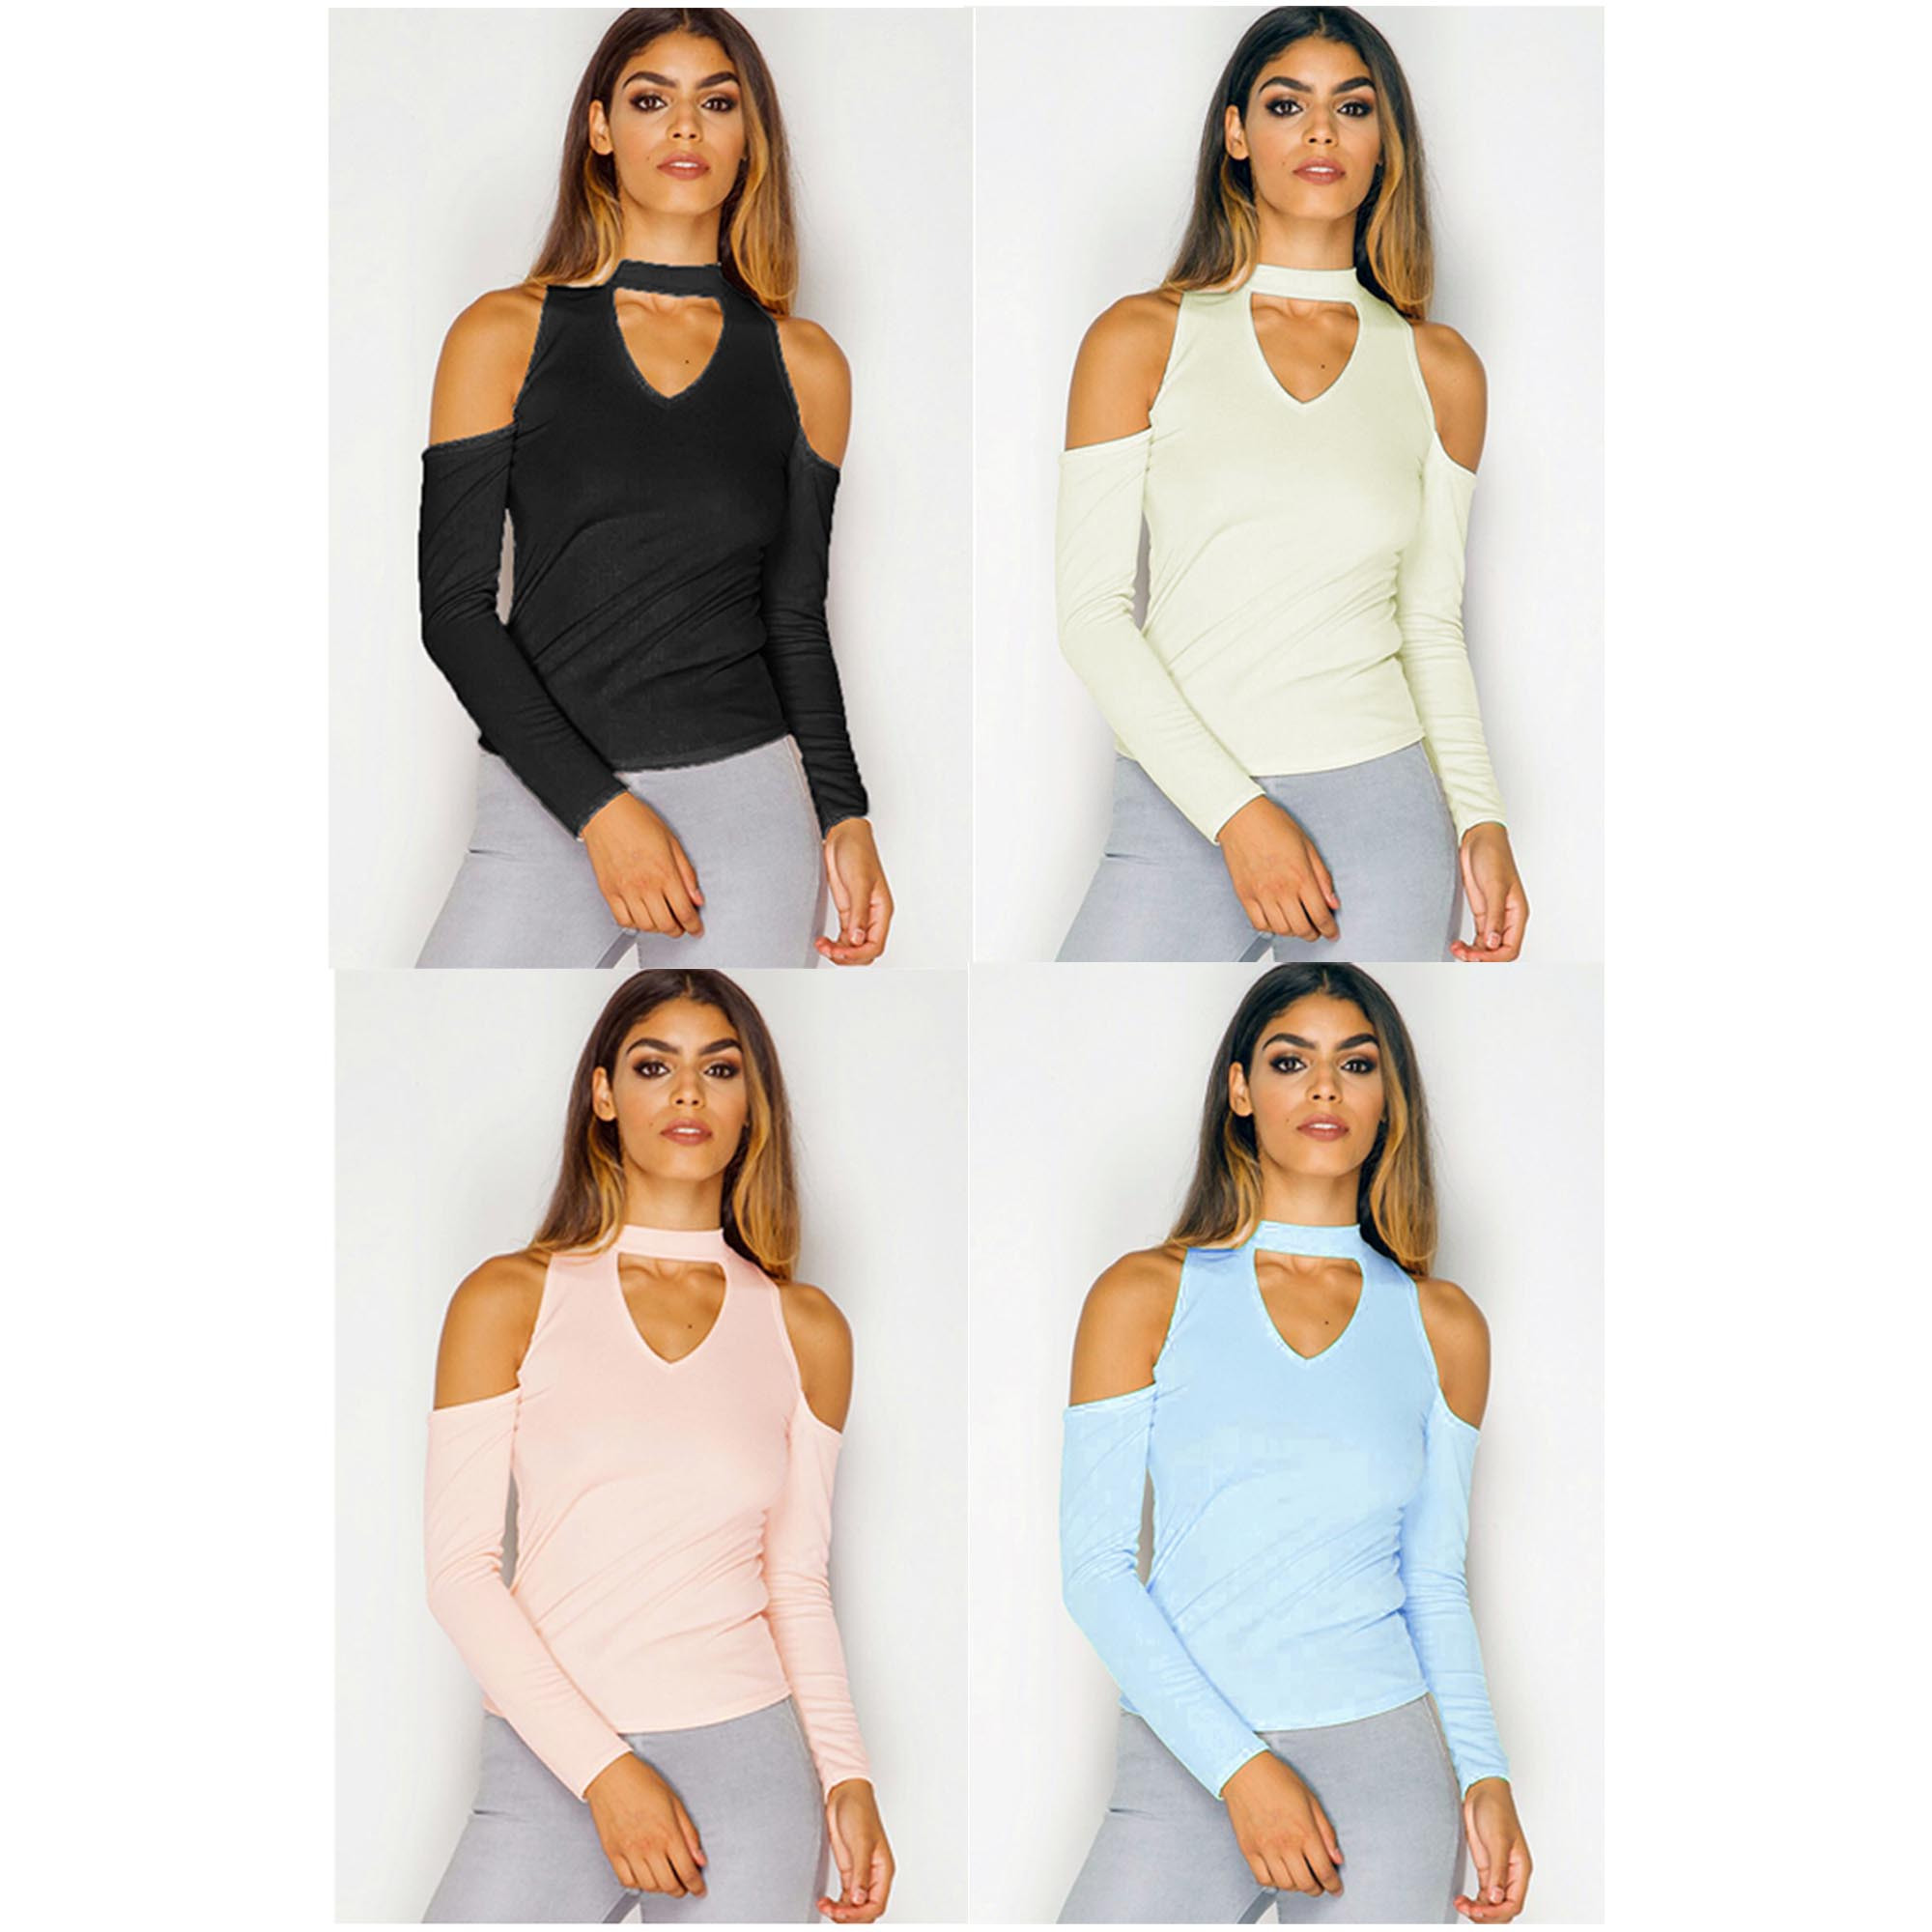 3f6f32a40 Ladies Choker Neck Top Womens Cut Out Shoulder Blouse Bodycon Casual ...